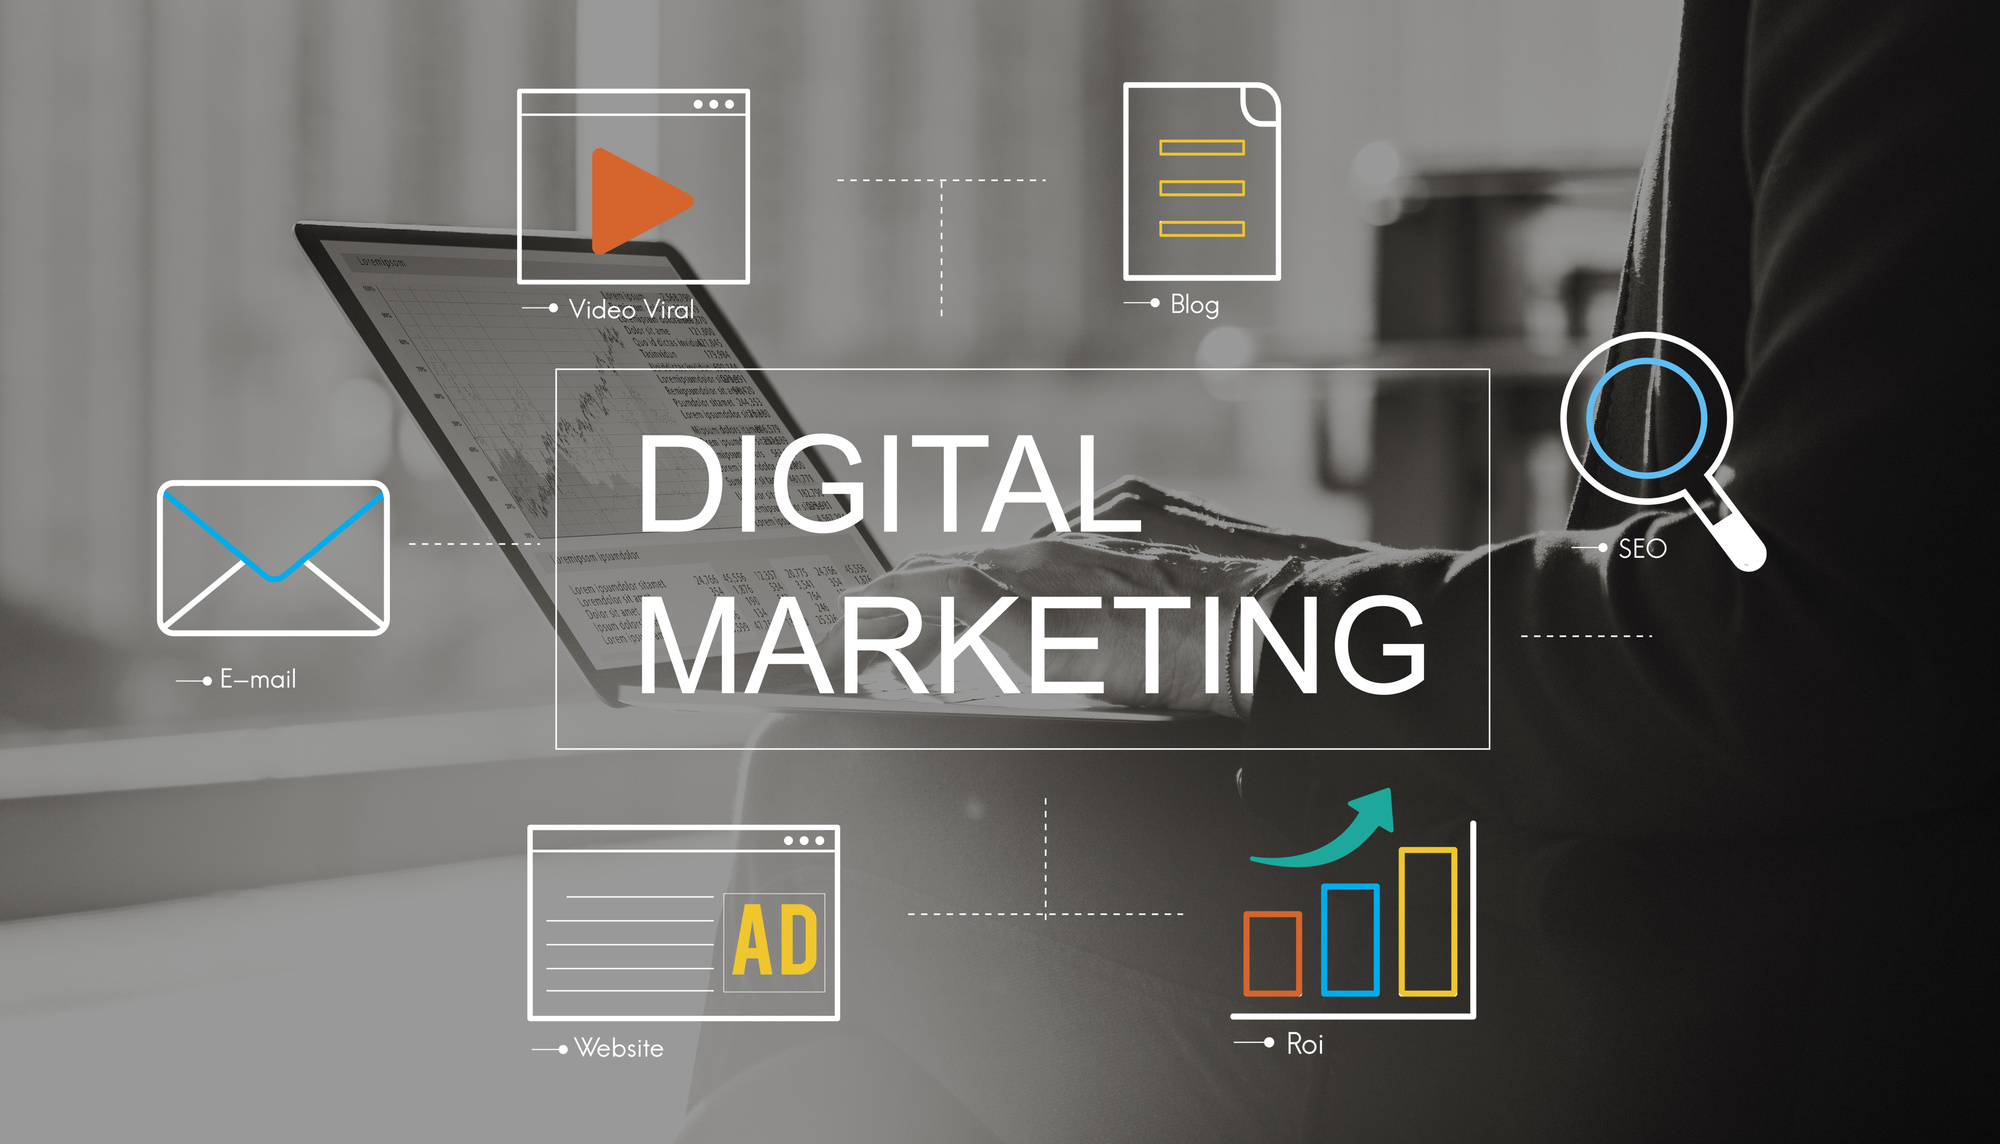 digital marketing text and icons